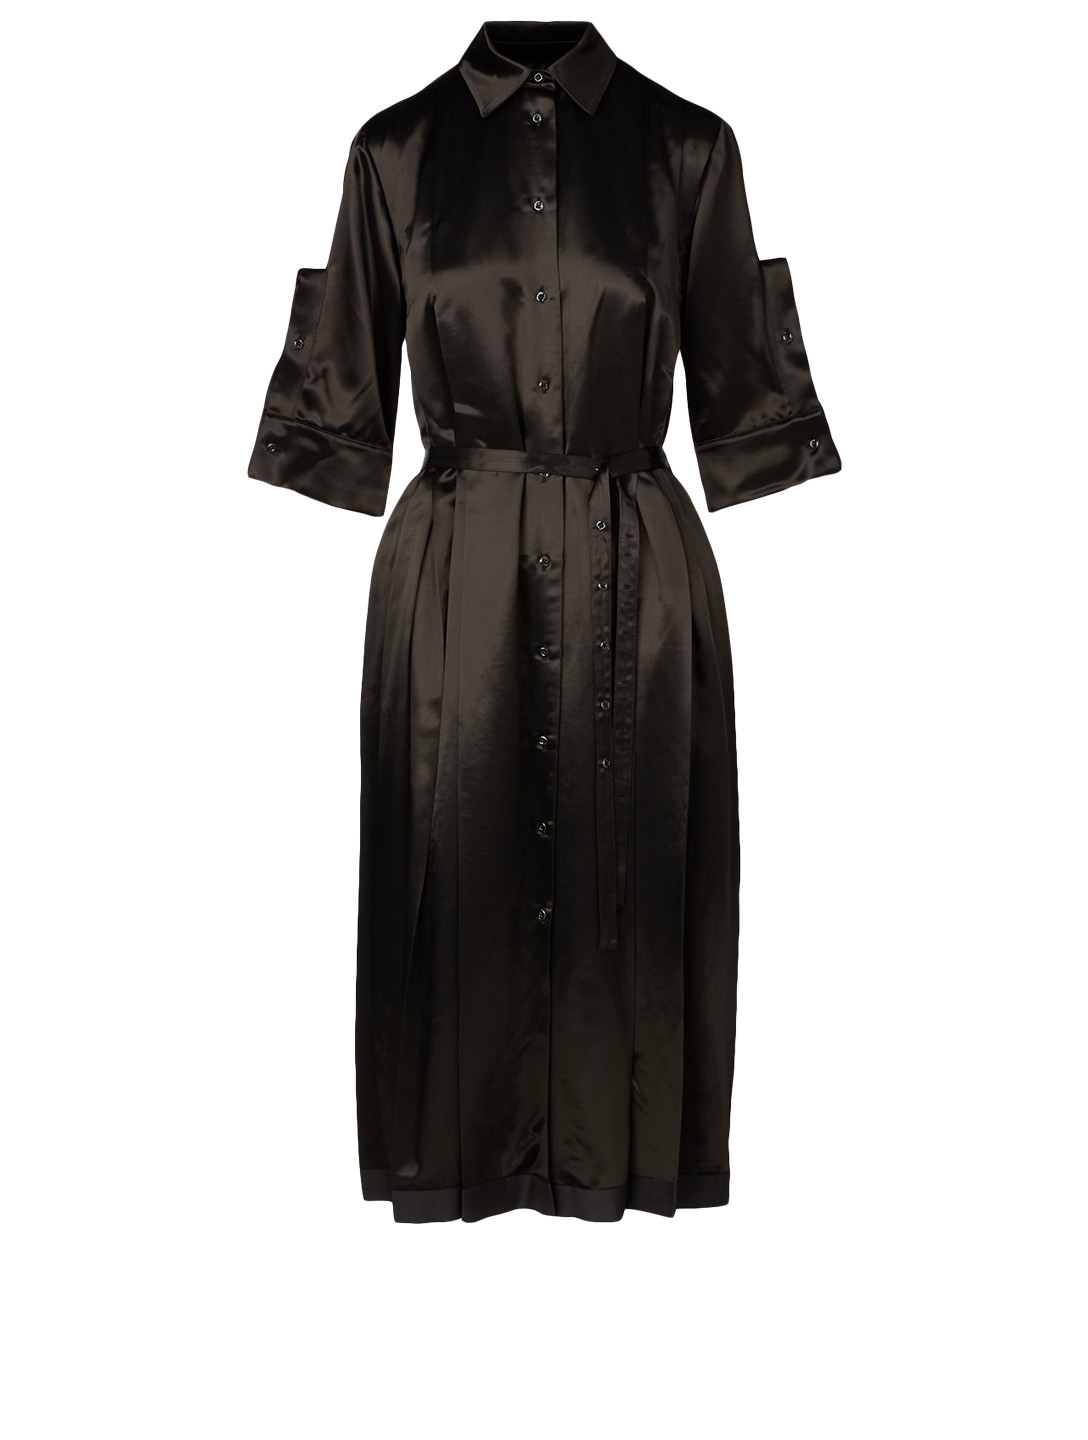 JIL SANDER Midi Dress With Cuffs Women's Black